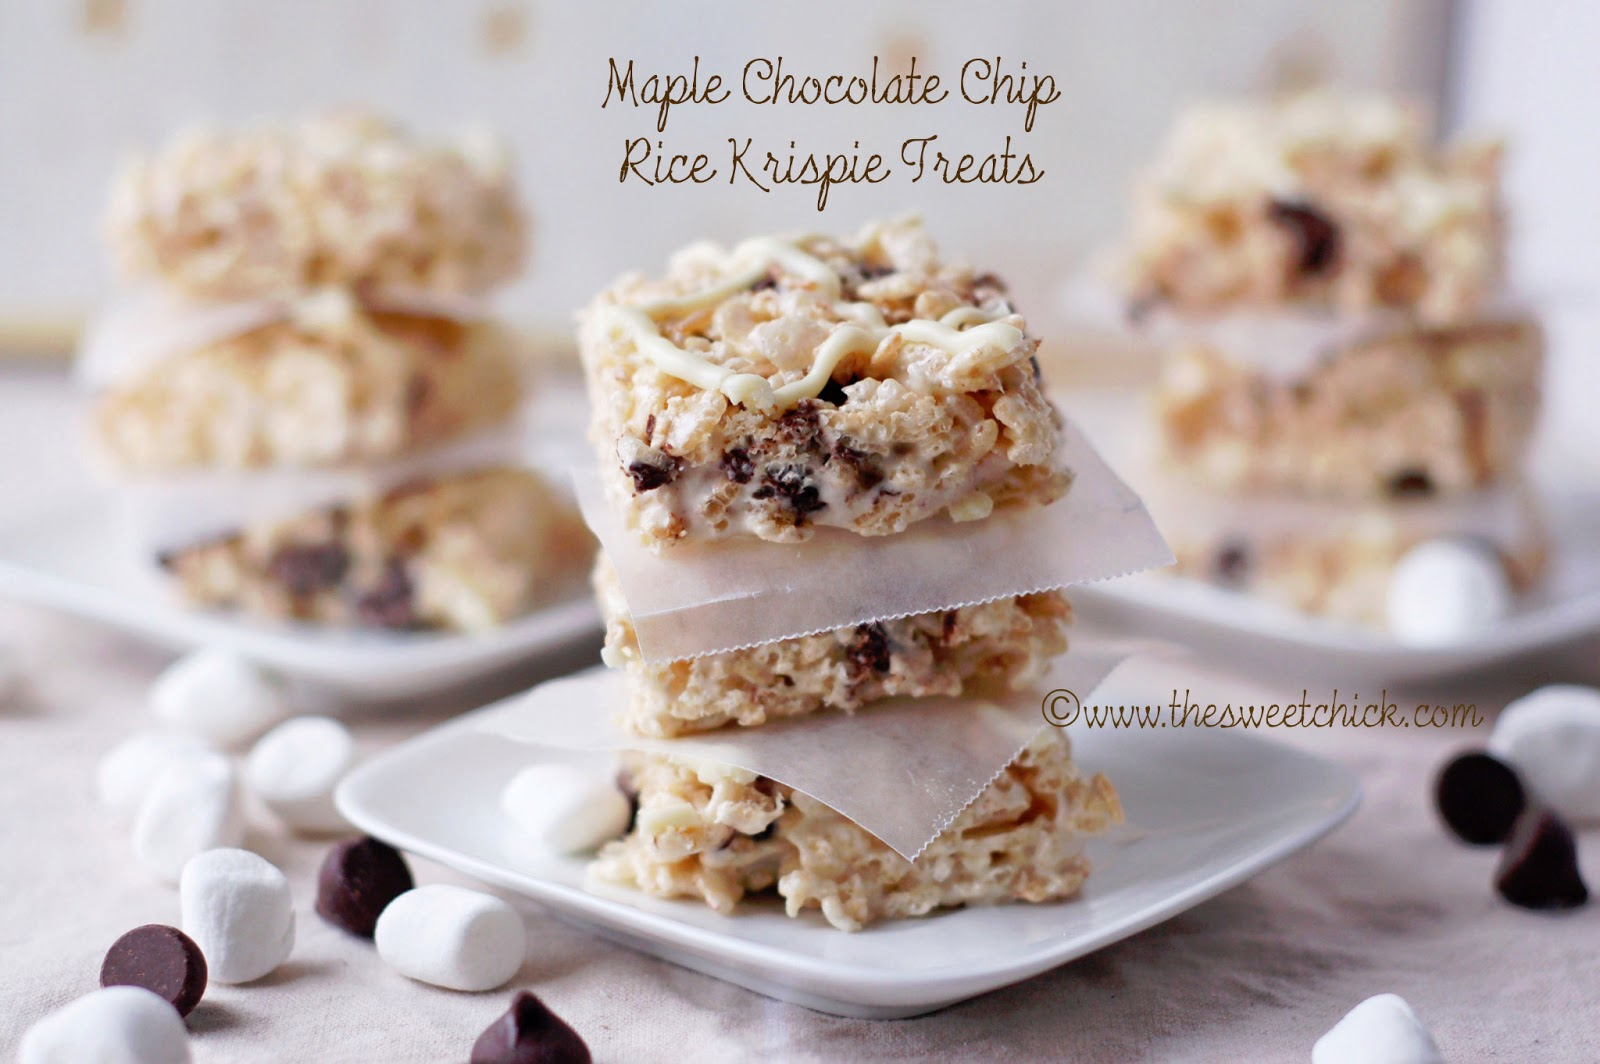 The Sweet Chick: Maple Chocolate Chip Rice Krispie Treats